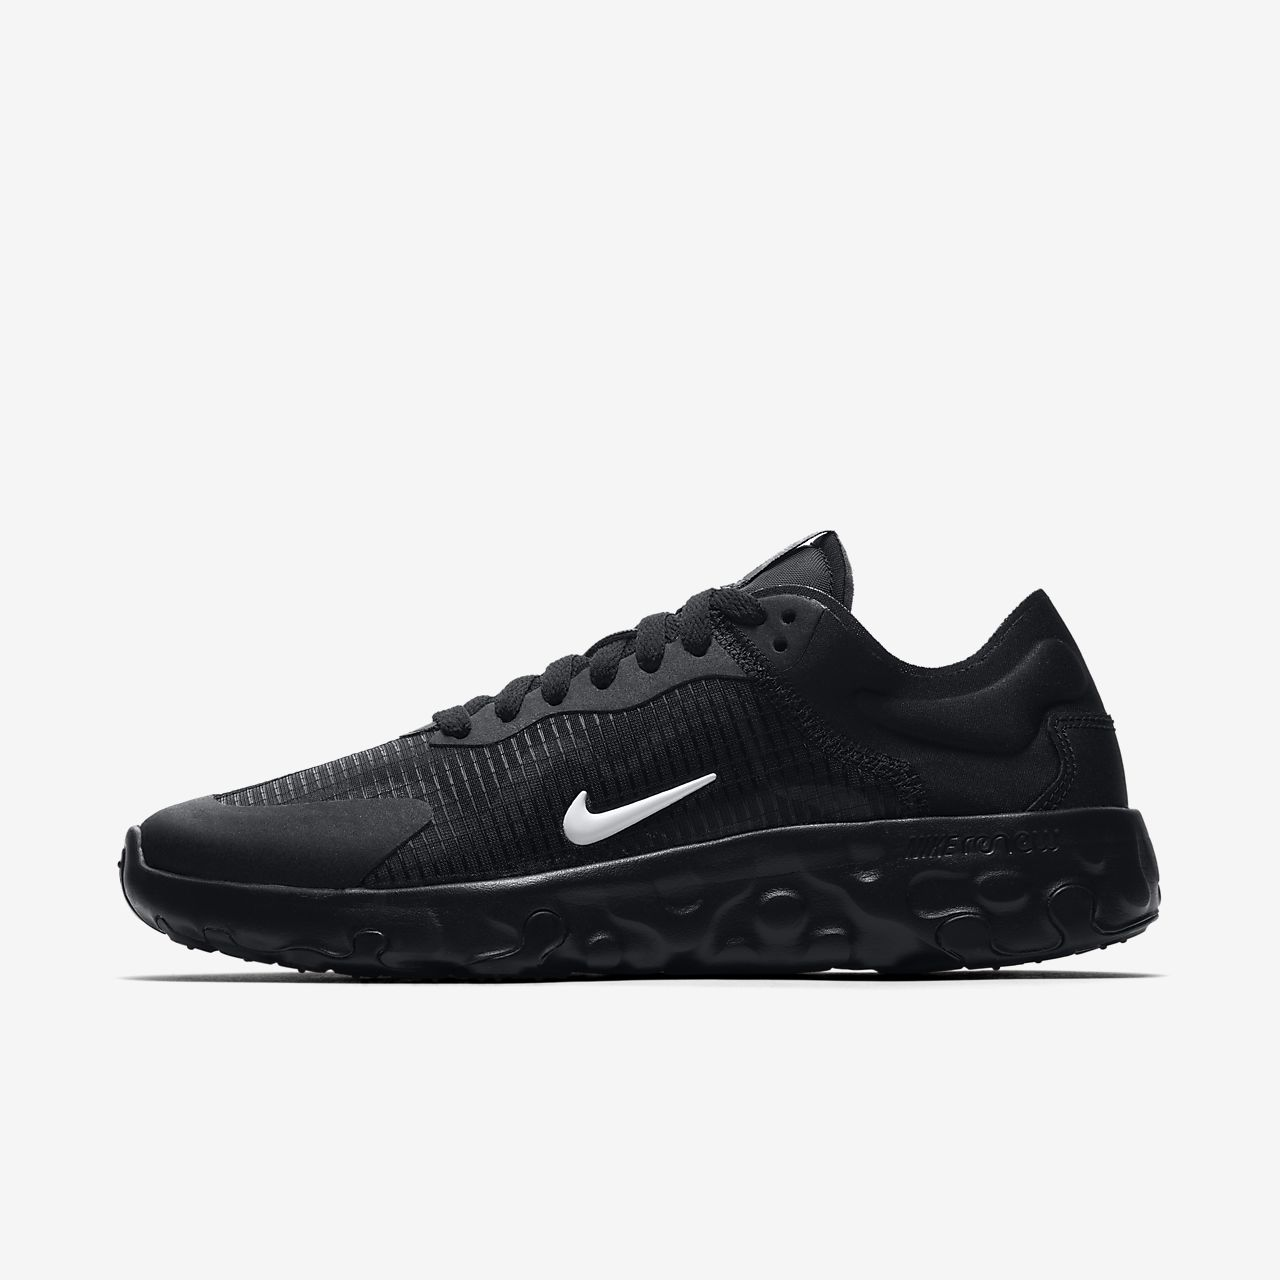 Chaussure Nike Renew Lucent pour Femme